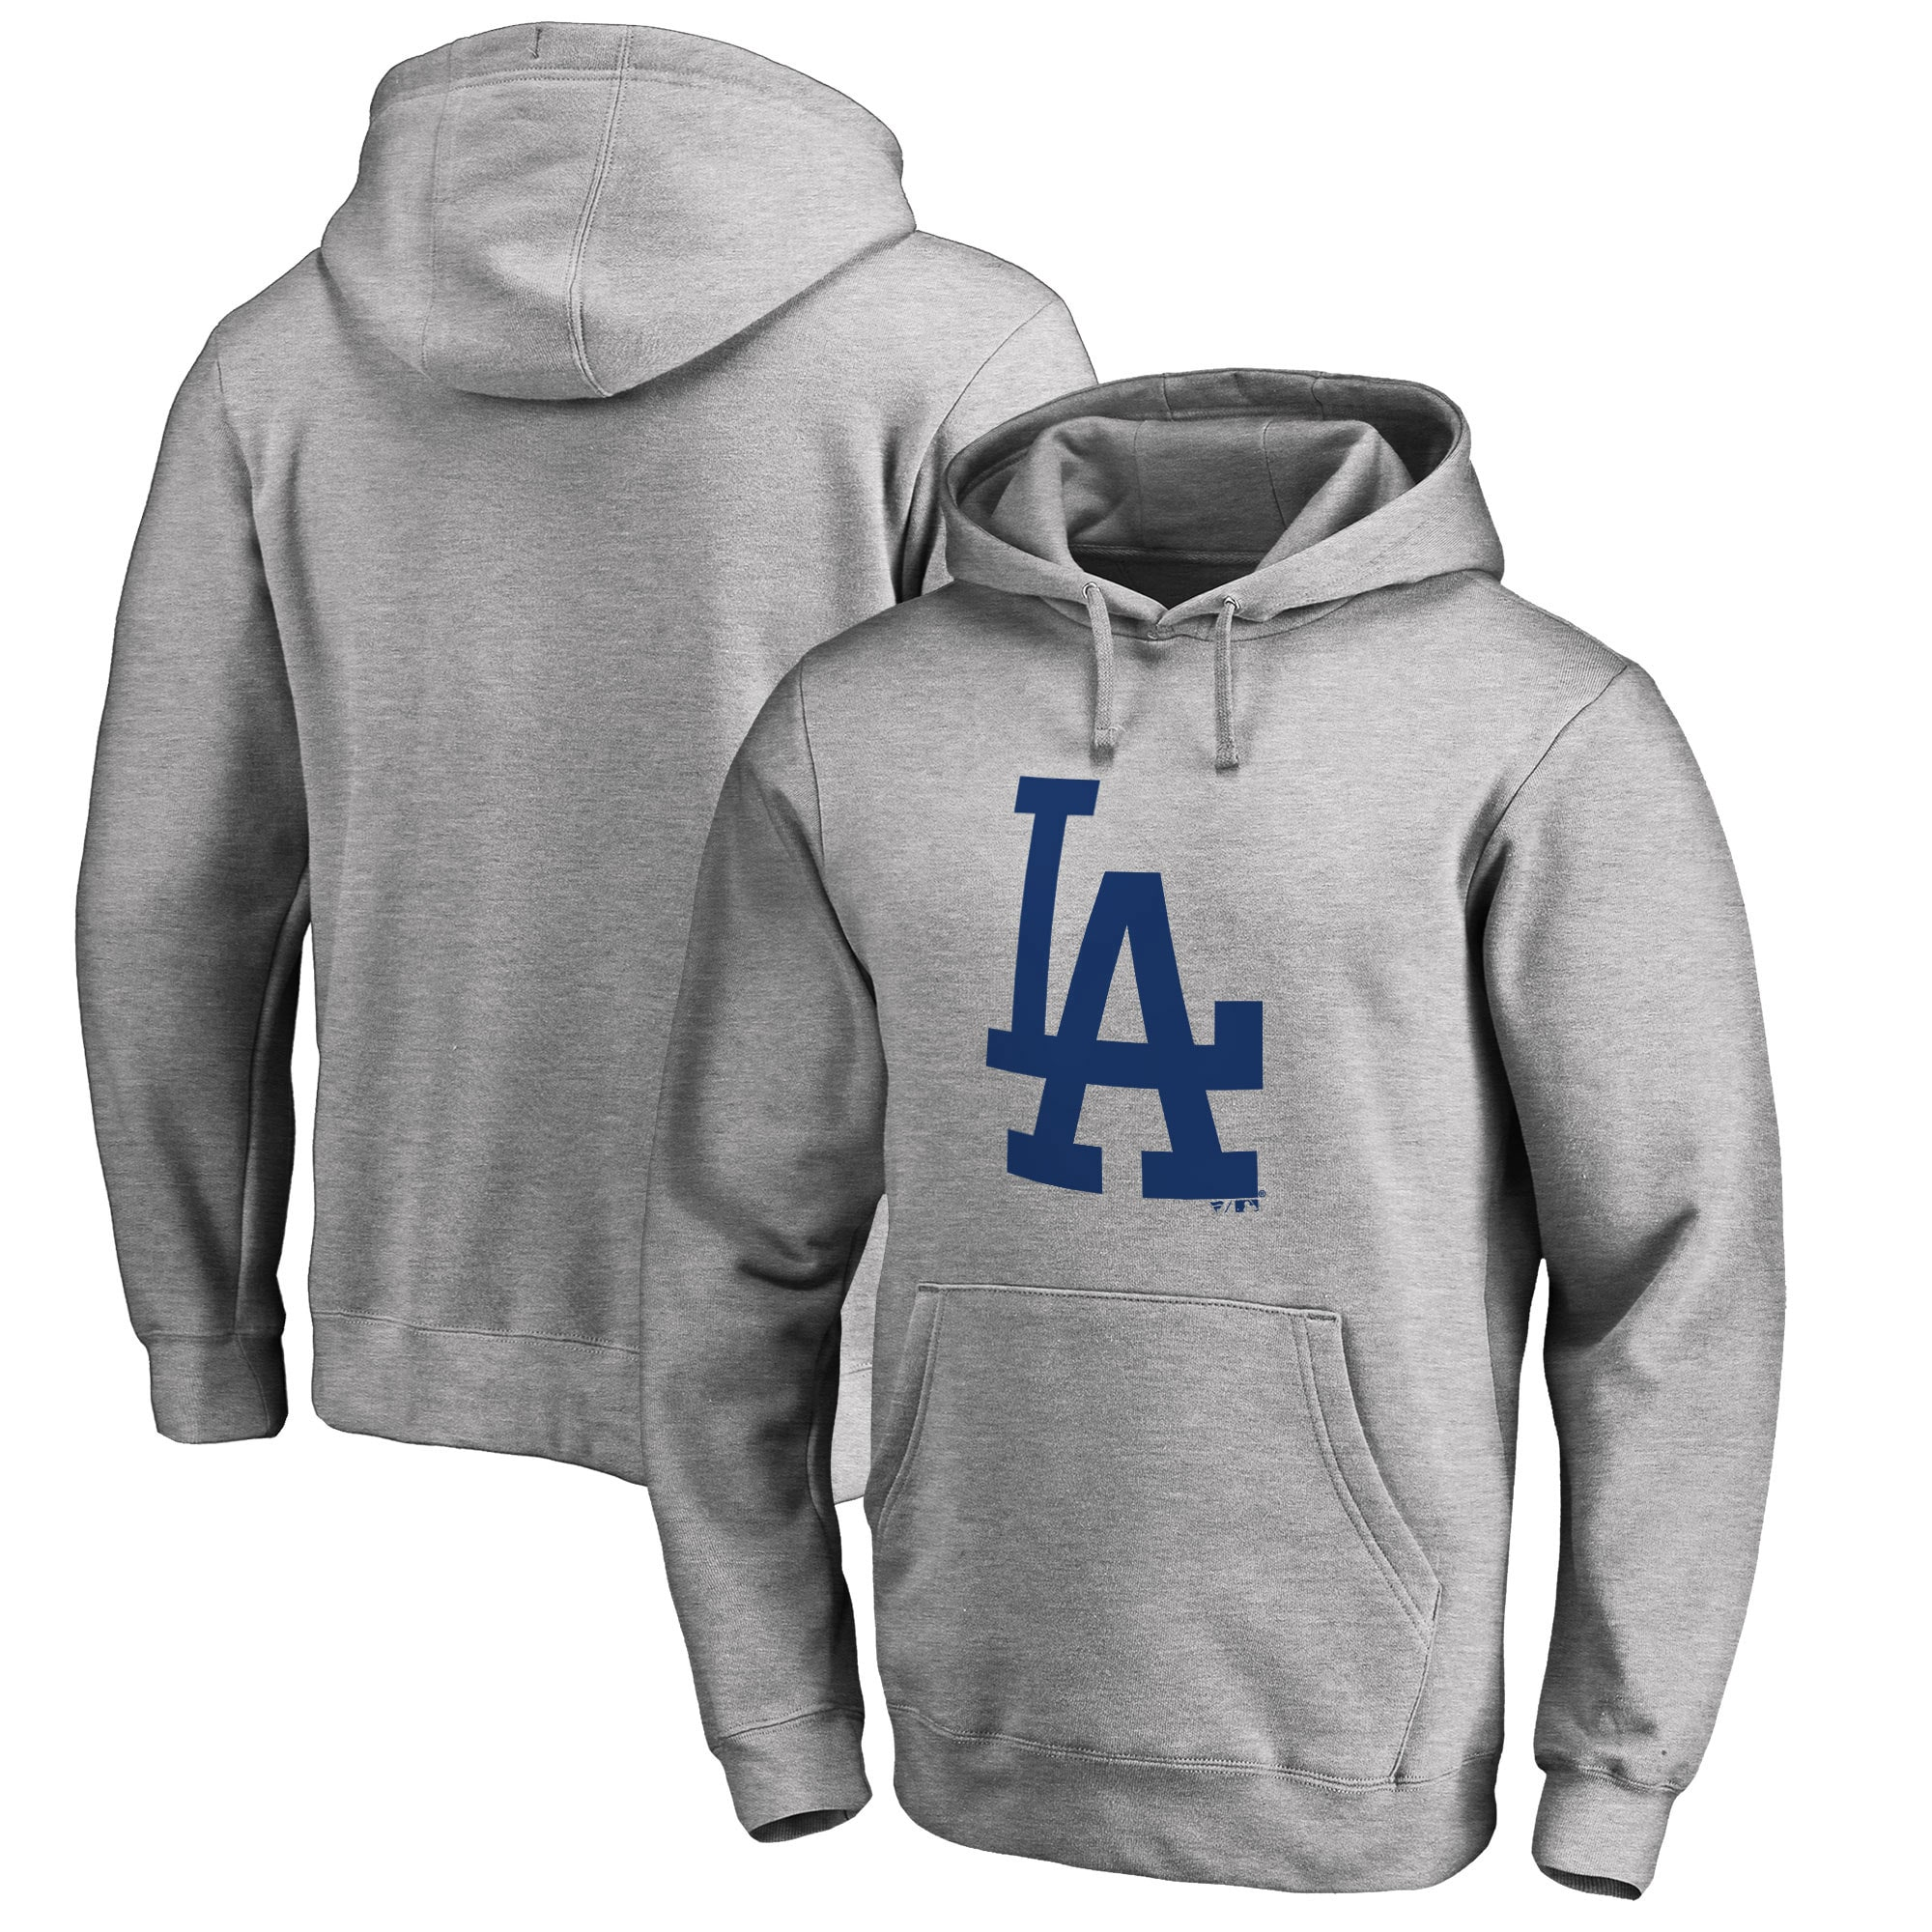 Los Angeles Dodgers Fanatics Branded Primary Logo Pullover Hoodie - Heathered Gray